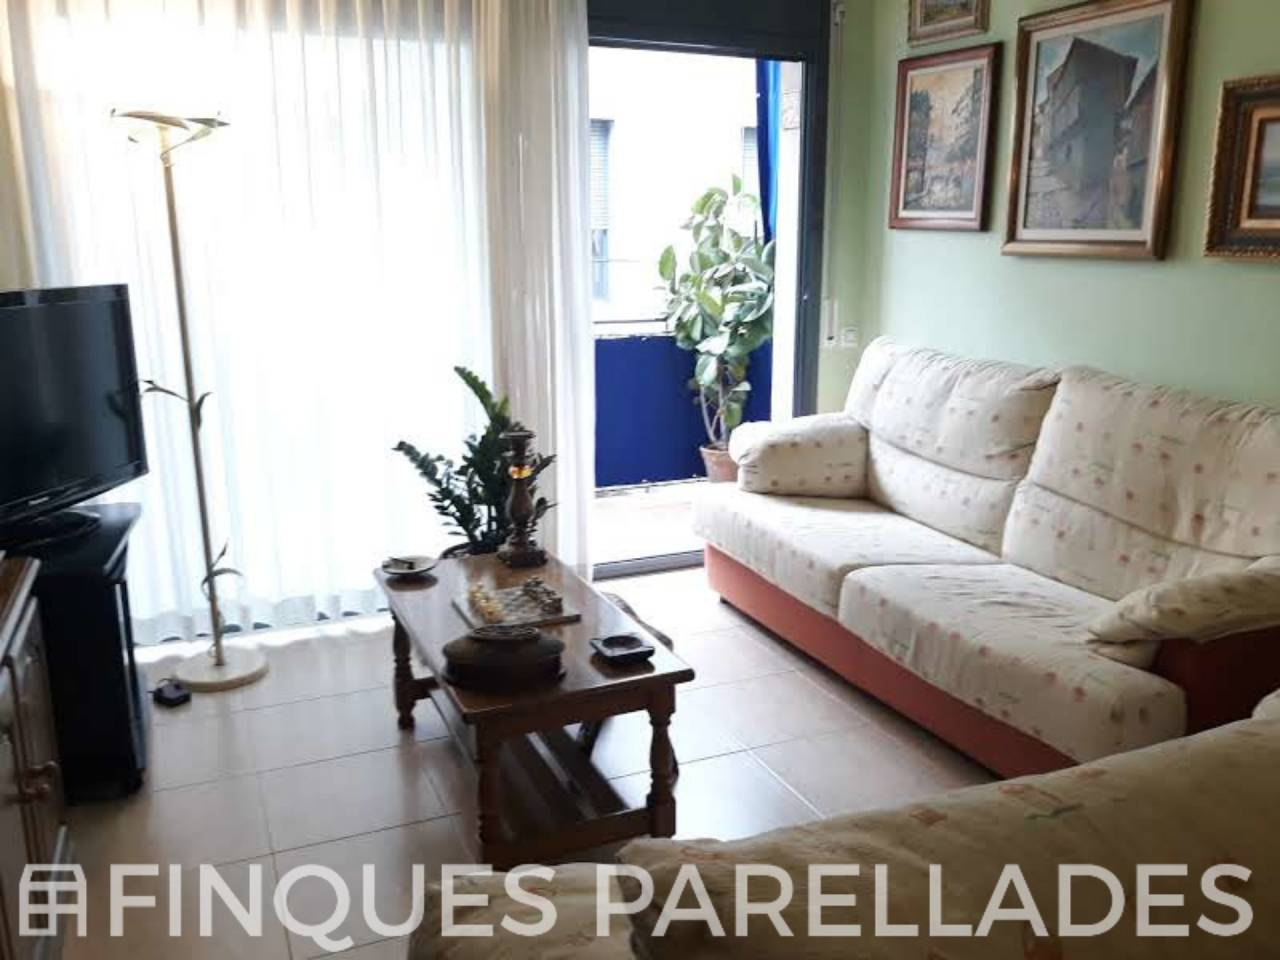 Nice apartment in Sitges in perfect condition with elevator. Optional parking. Zone: Next to Casas Novas.